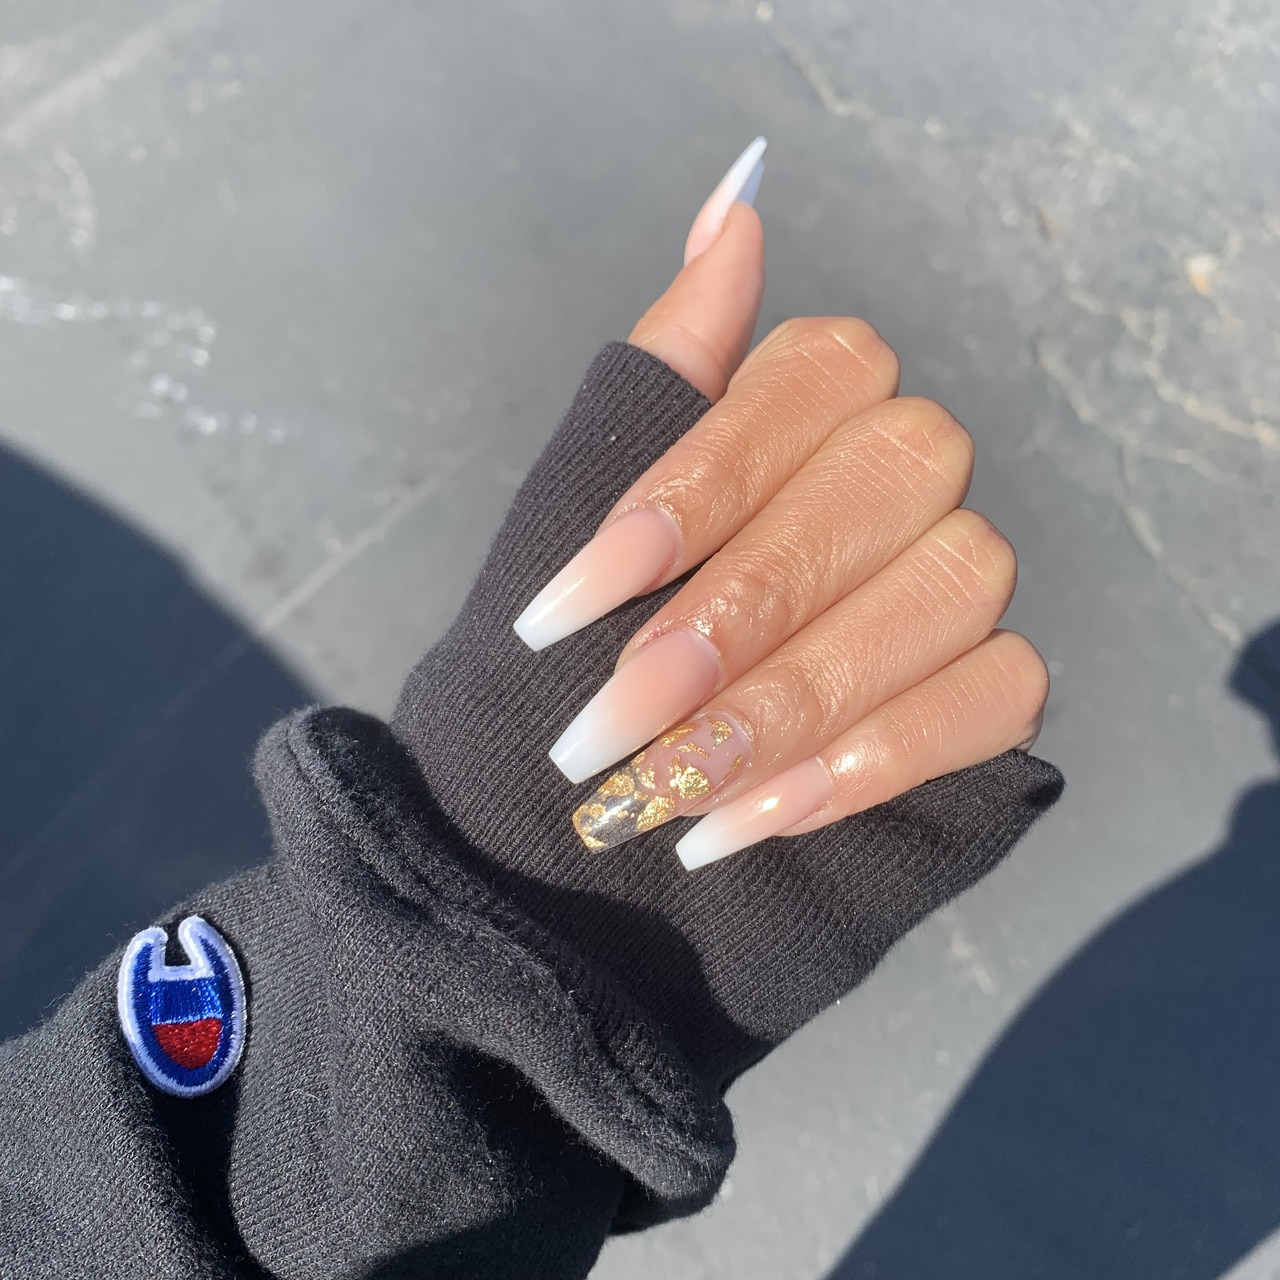 prom nails insta kyrah.b uploaded by Pisces Princess